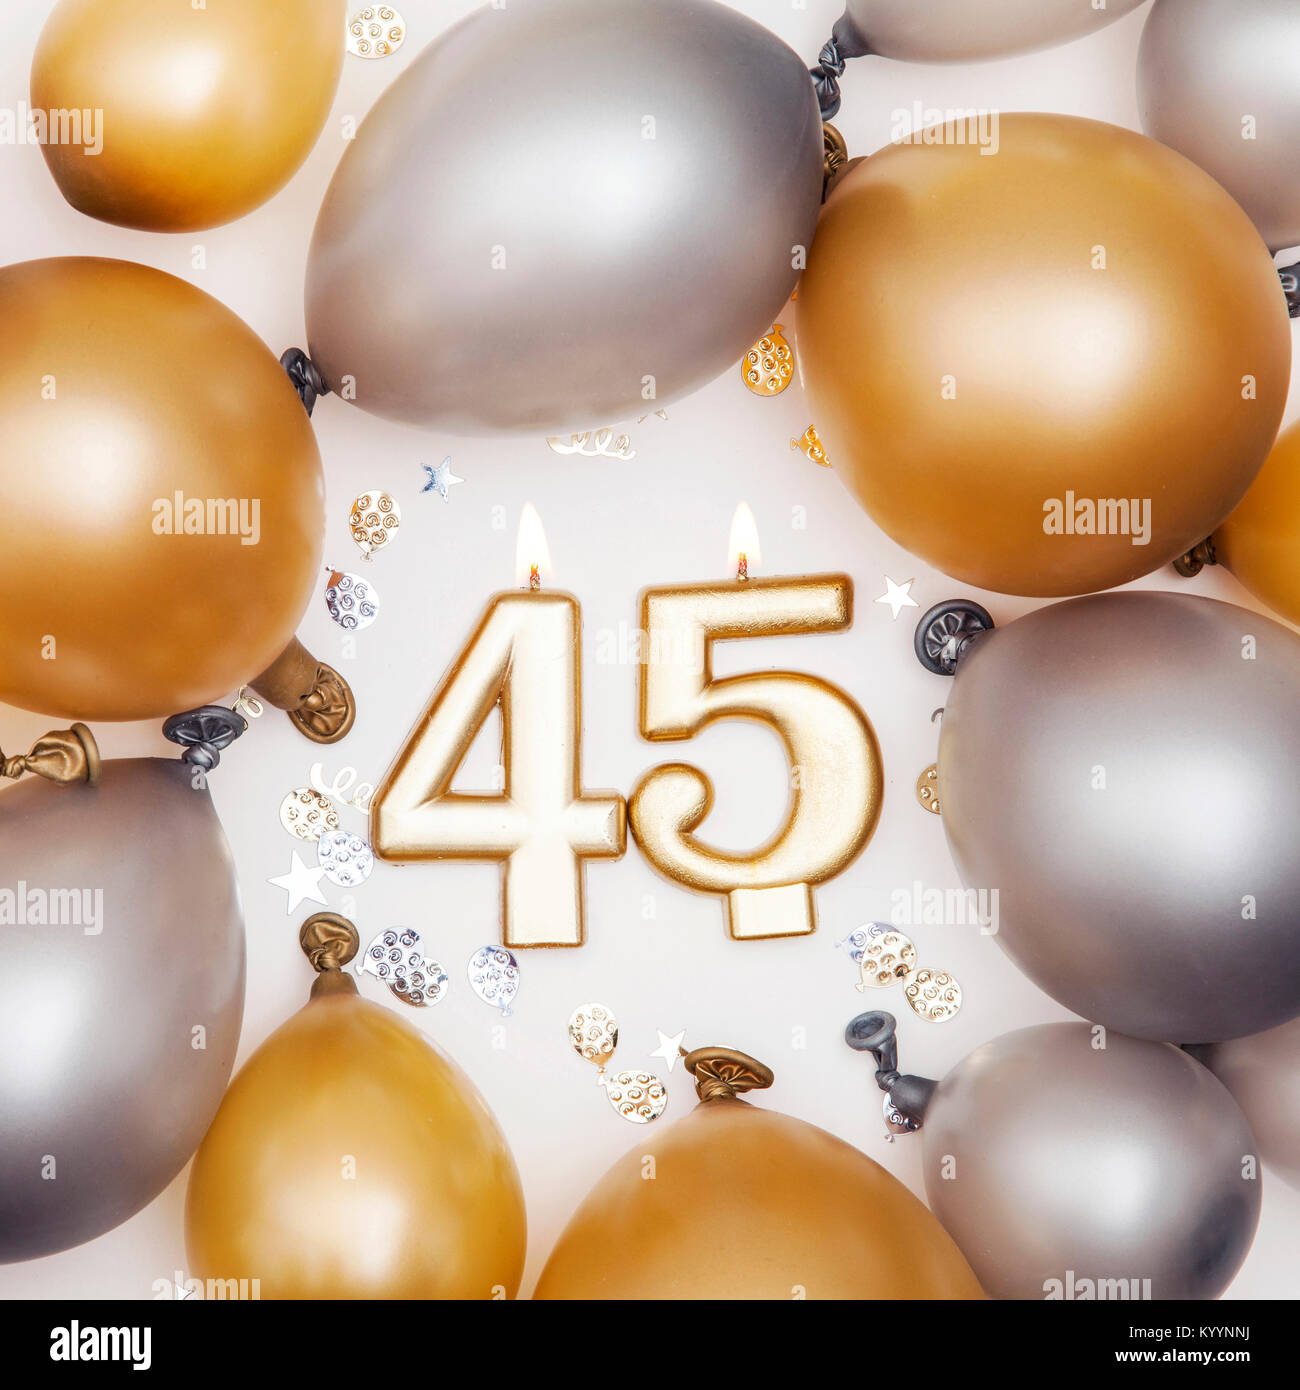 Birthday Celebration Number 45 Candle With Gold And Silver Balloons